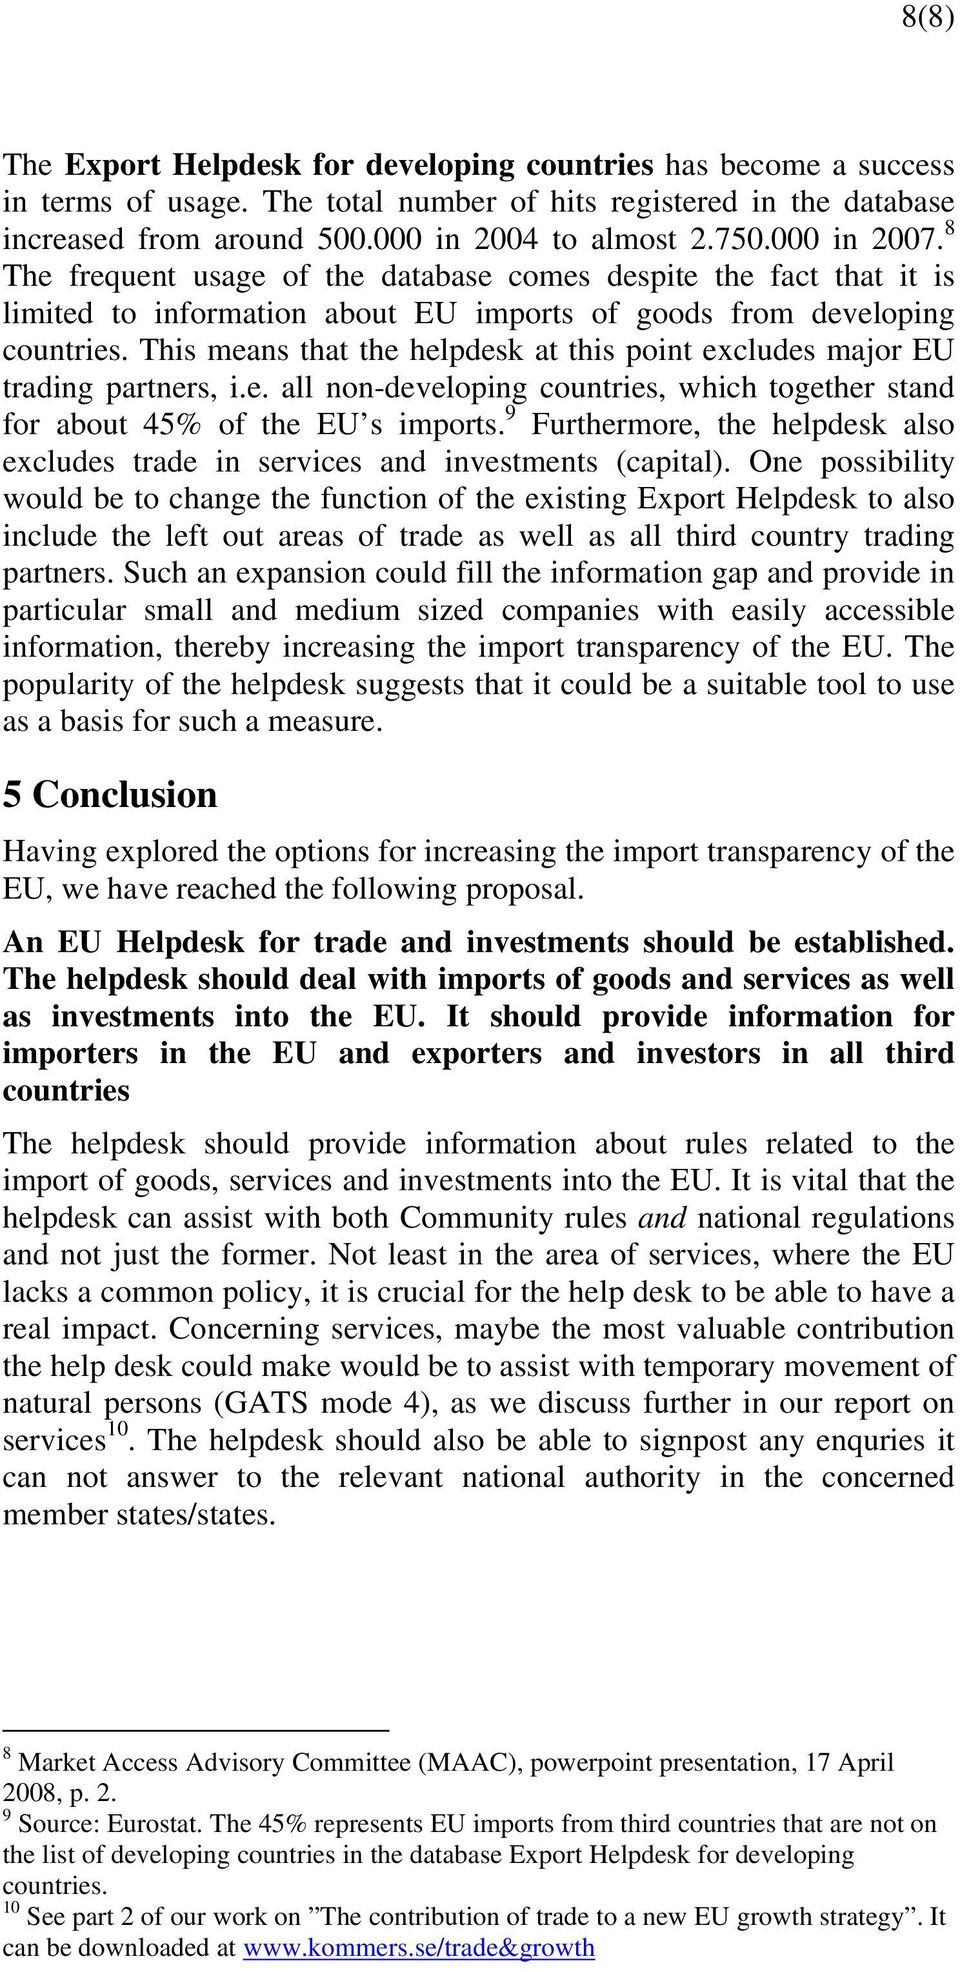 This means that the helpdesk at this point excludes major EU trading partners, i.e. all non-developing countries, which together stand for about 45% of the EU s imports.